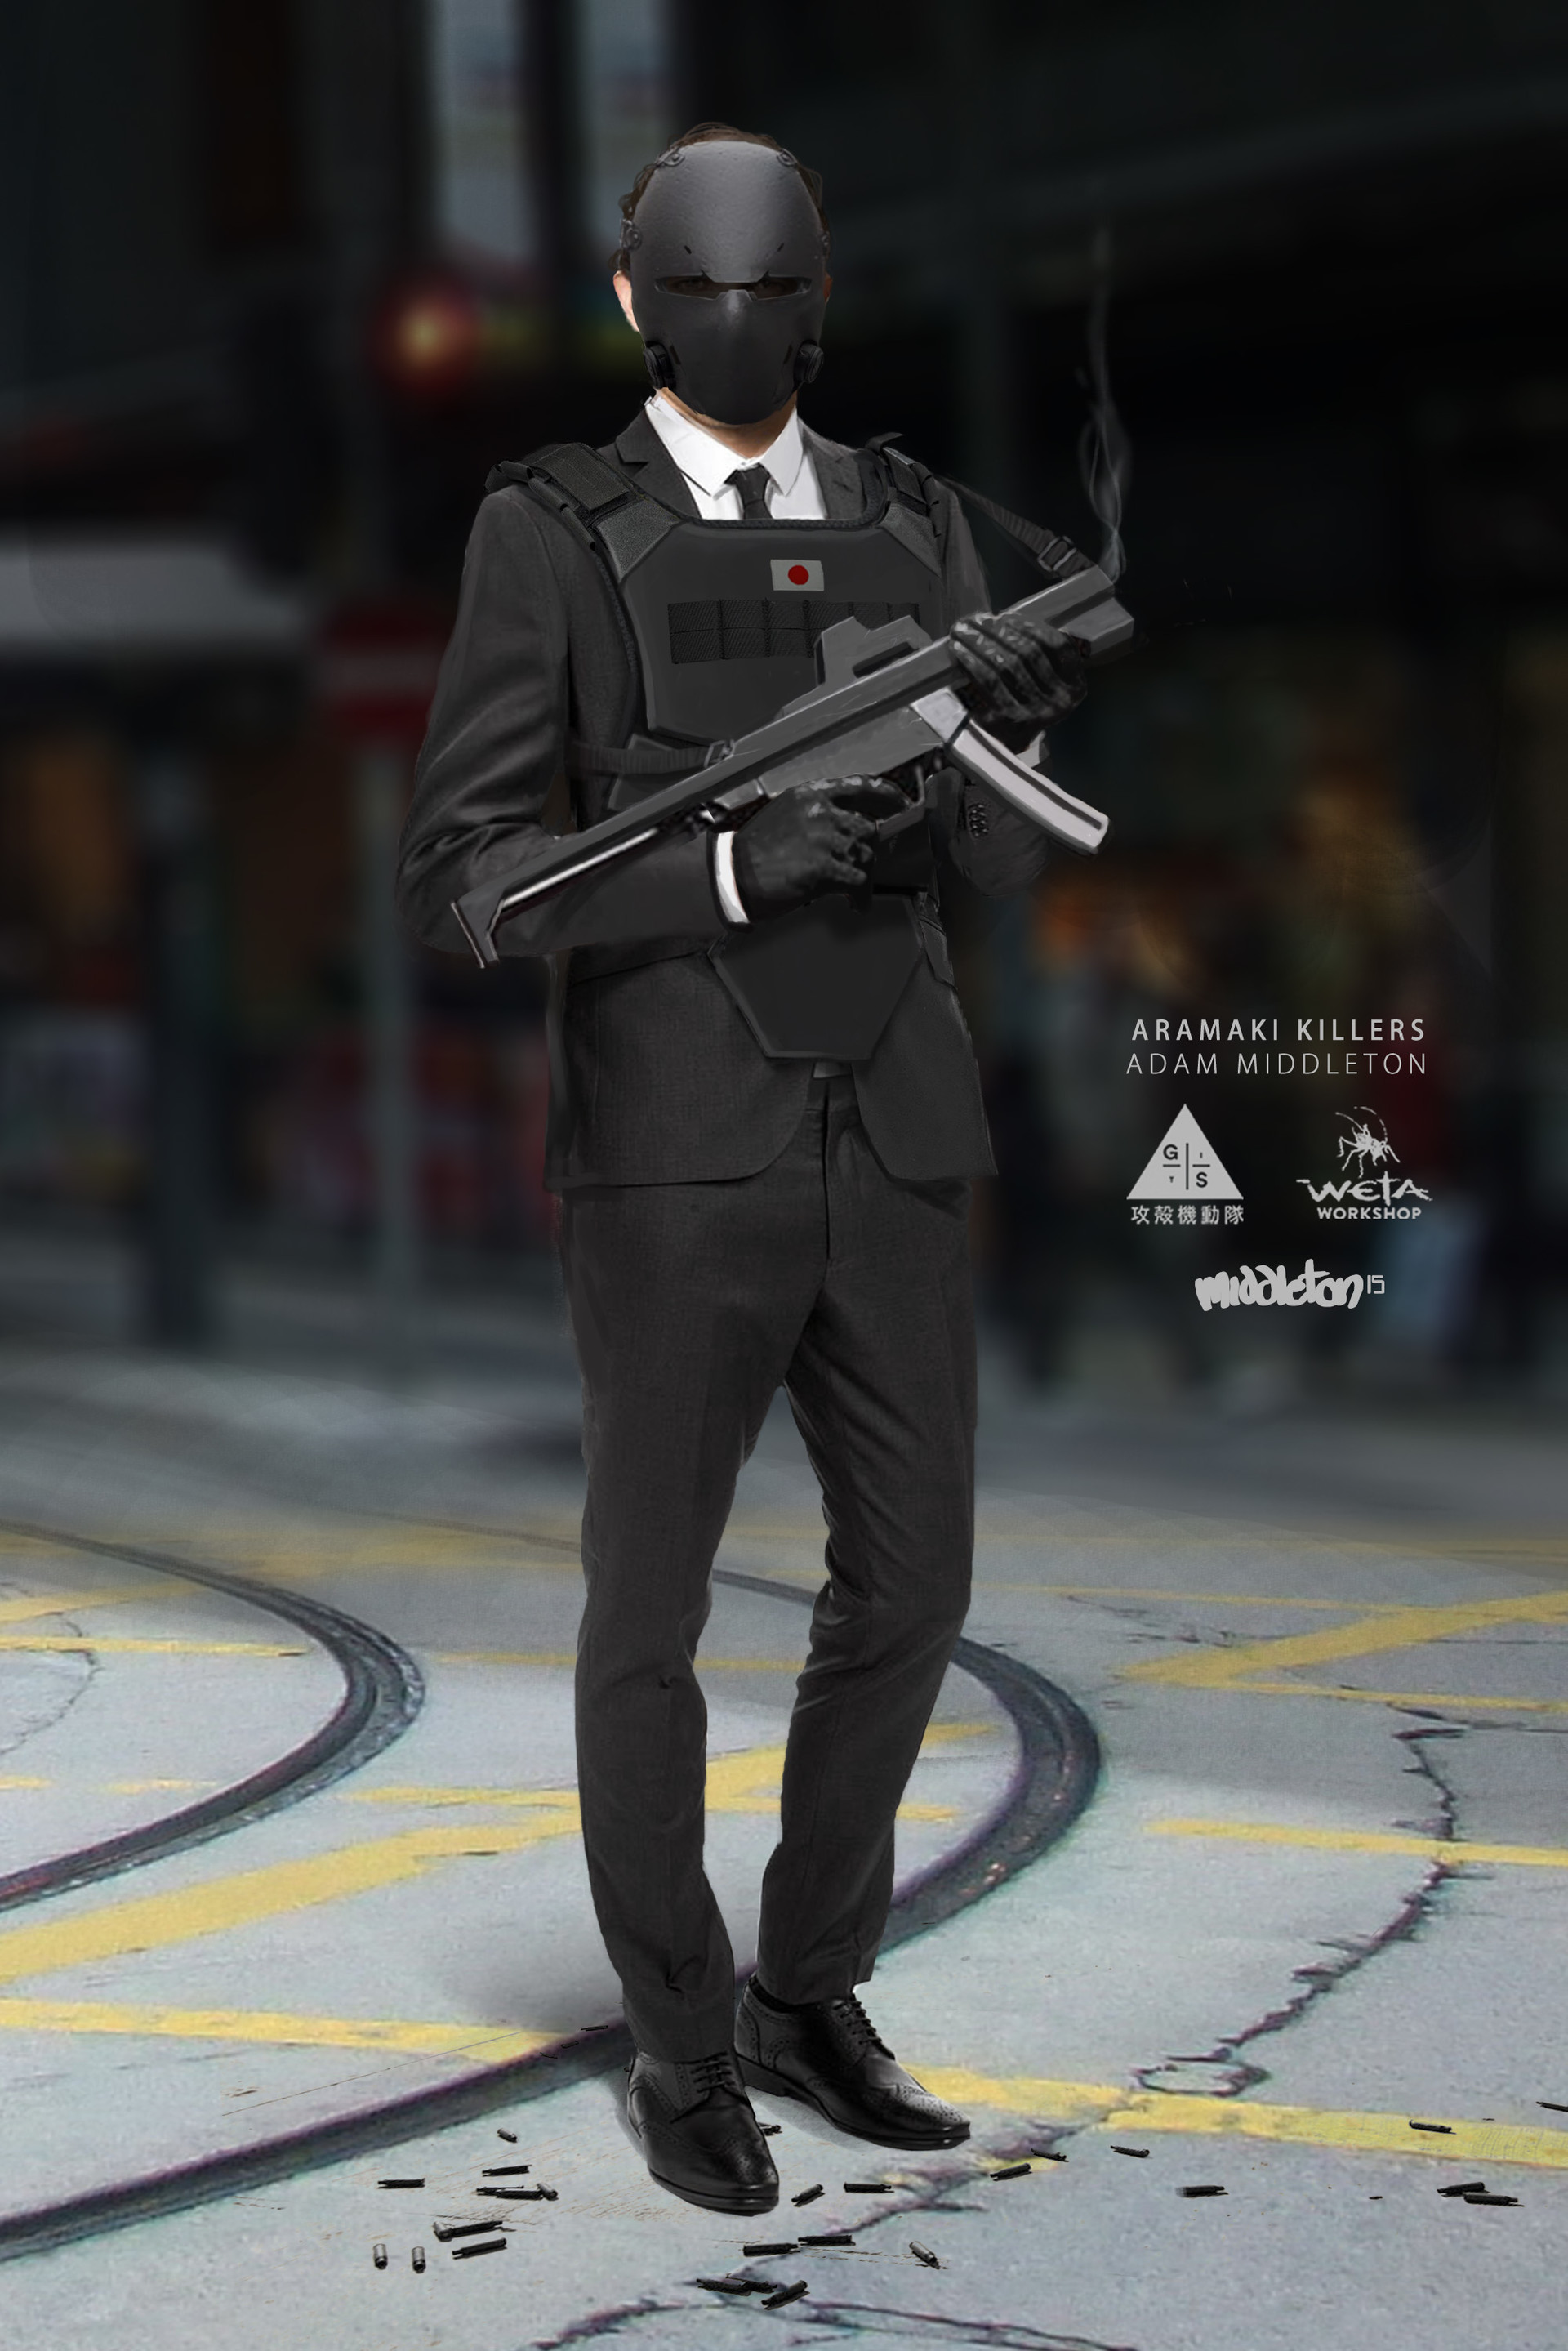 Section 6 Security/Assassin